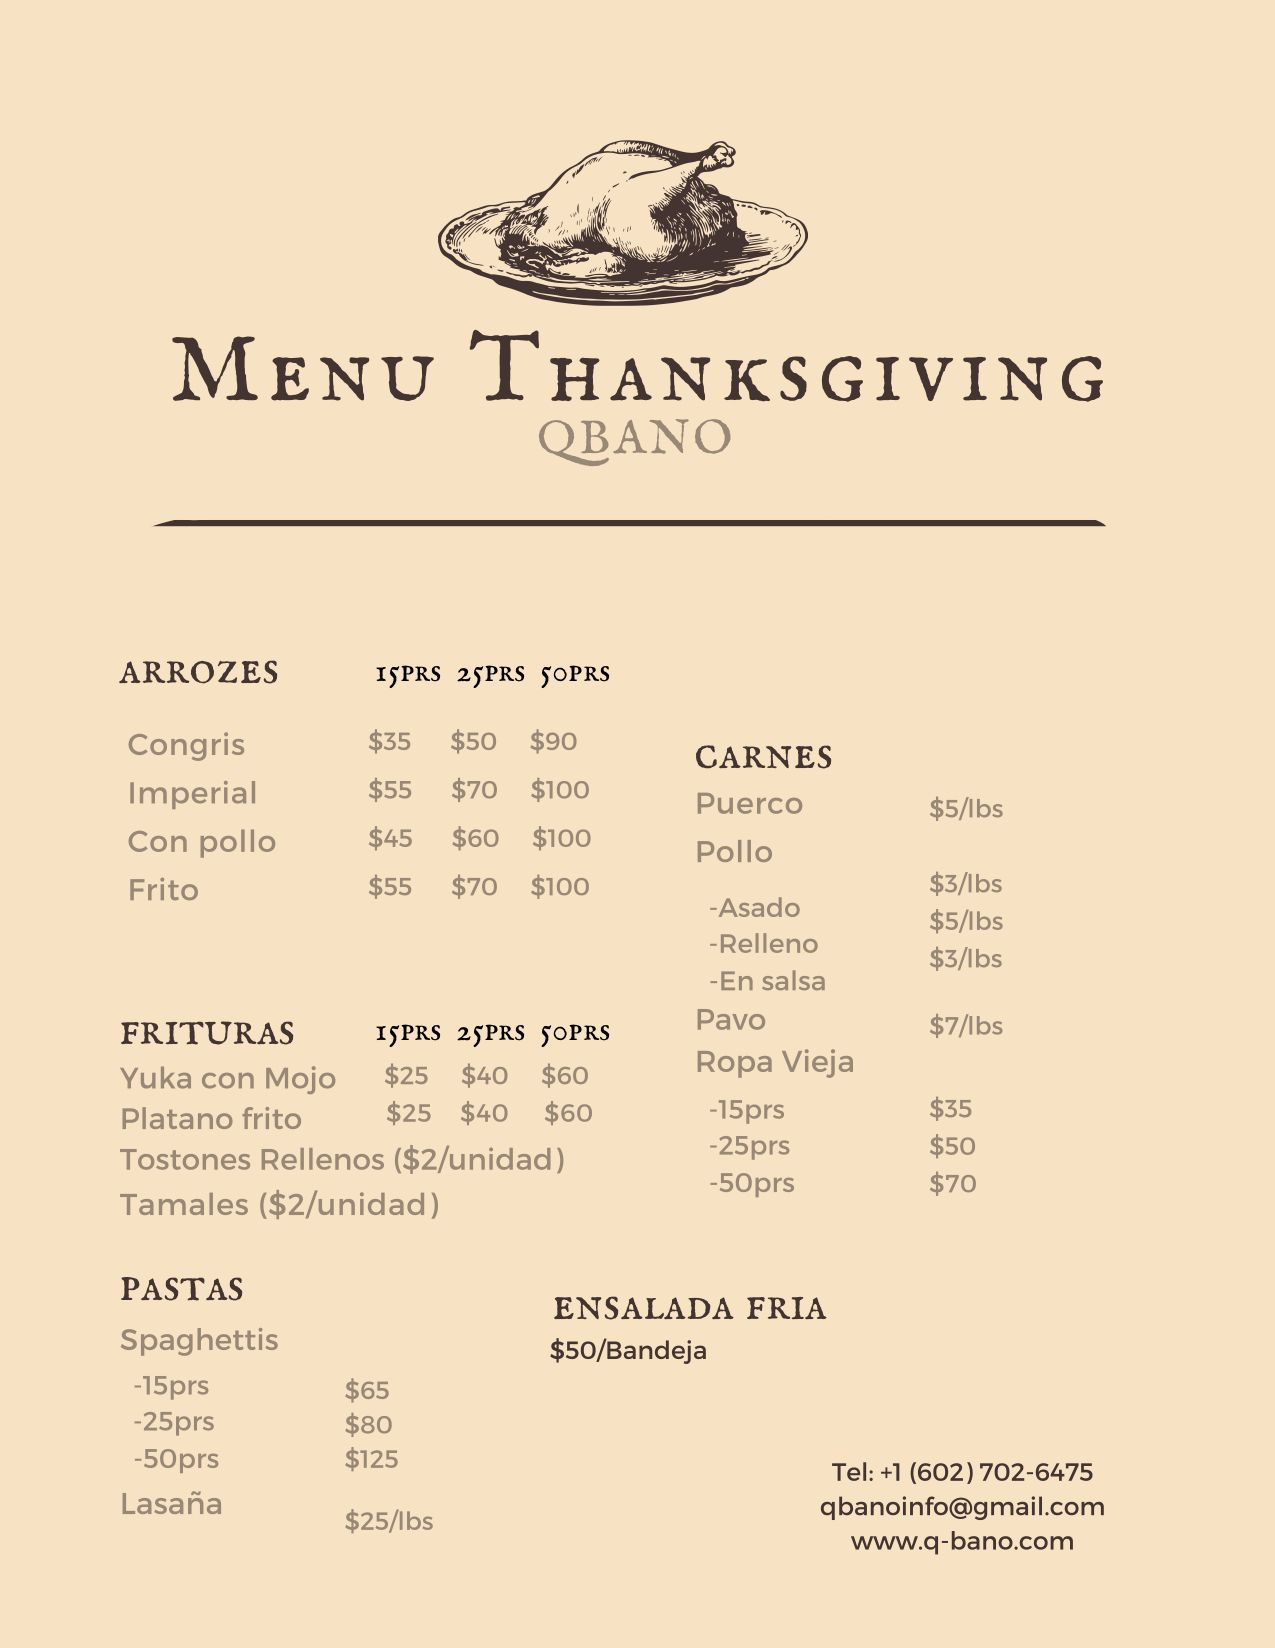 QBANO is here with a new menu for Thanksgiving, delicious